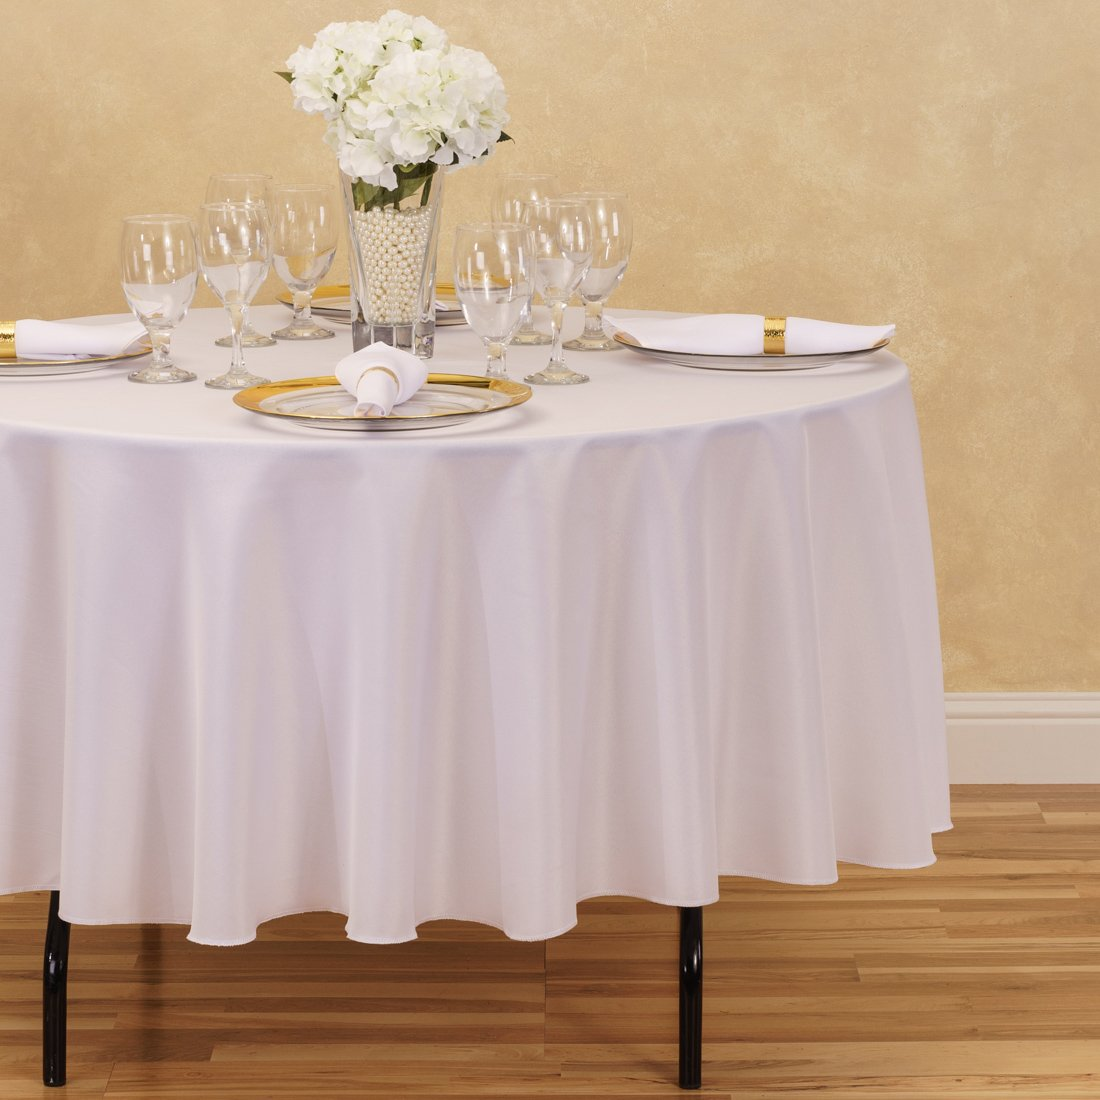 wise table christmas germany and linens stoeber gingerbread cloths world napkins styles three series products stober kings order in by volkmar img cotton